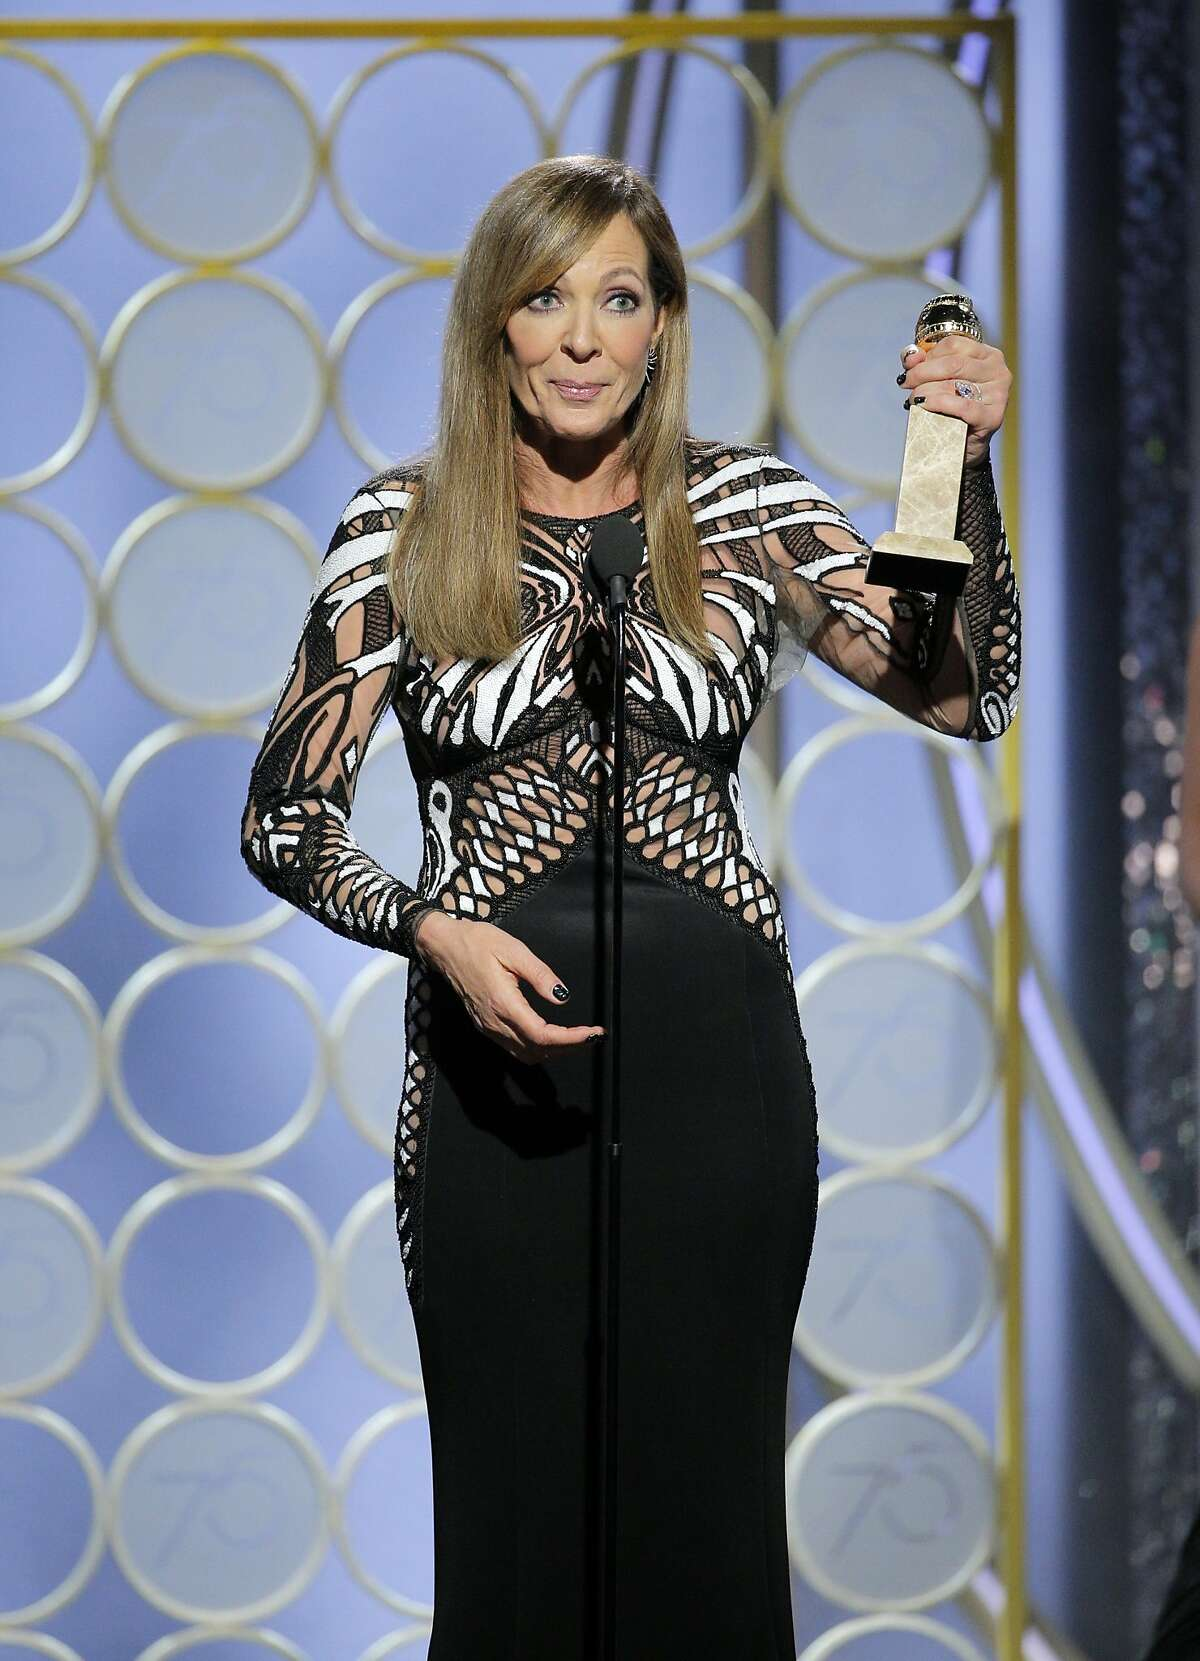 """This image released by NBC shows Allison Janney accepting the award for best supporting actress in a motion picture for her role in """"I, Tonya,"""" at the 75th Annual Golden Globe Awards in Beverly Hills, Calif., on Sunday, Jan. 7, 2018. (Paul Drinkwater/NBC via AP)"""